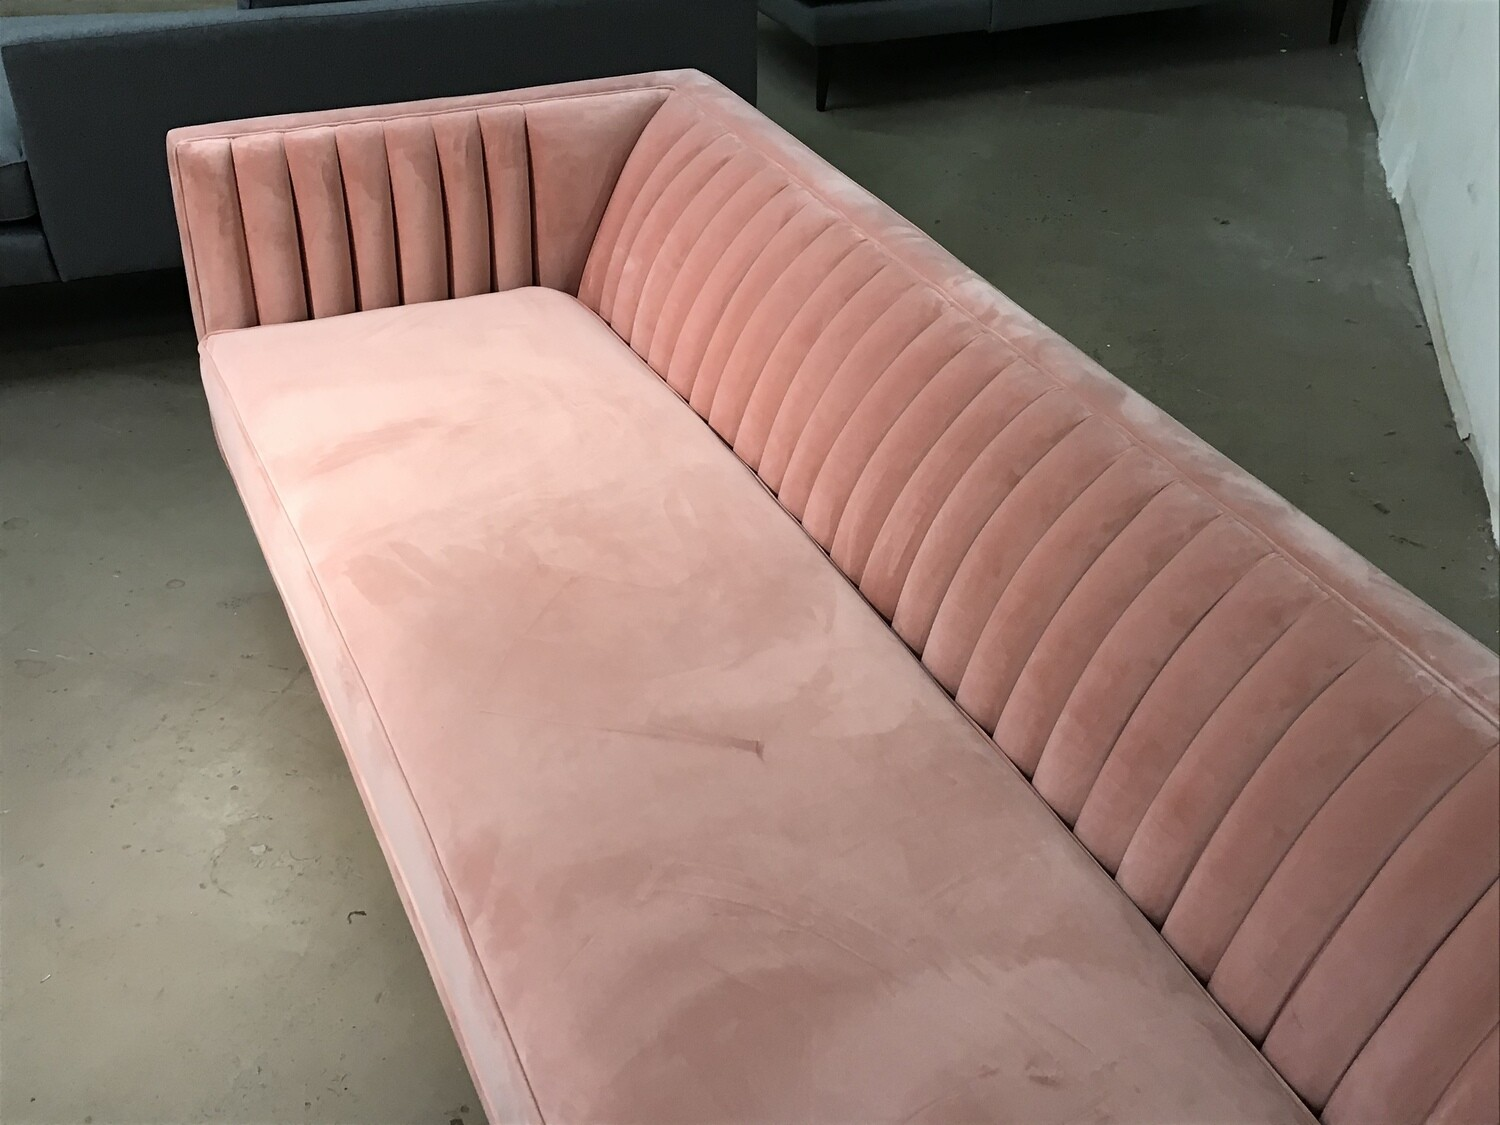 JB Chelsea Sofa Fabric: Royale Blush Wood Stain: Mocha (minor stain on one arm)